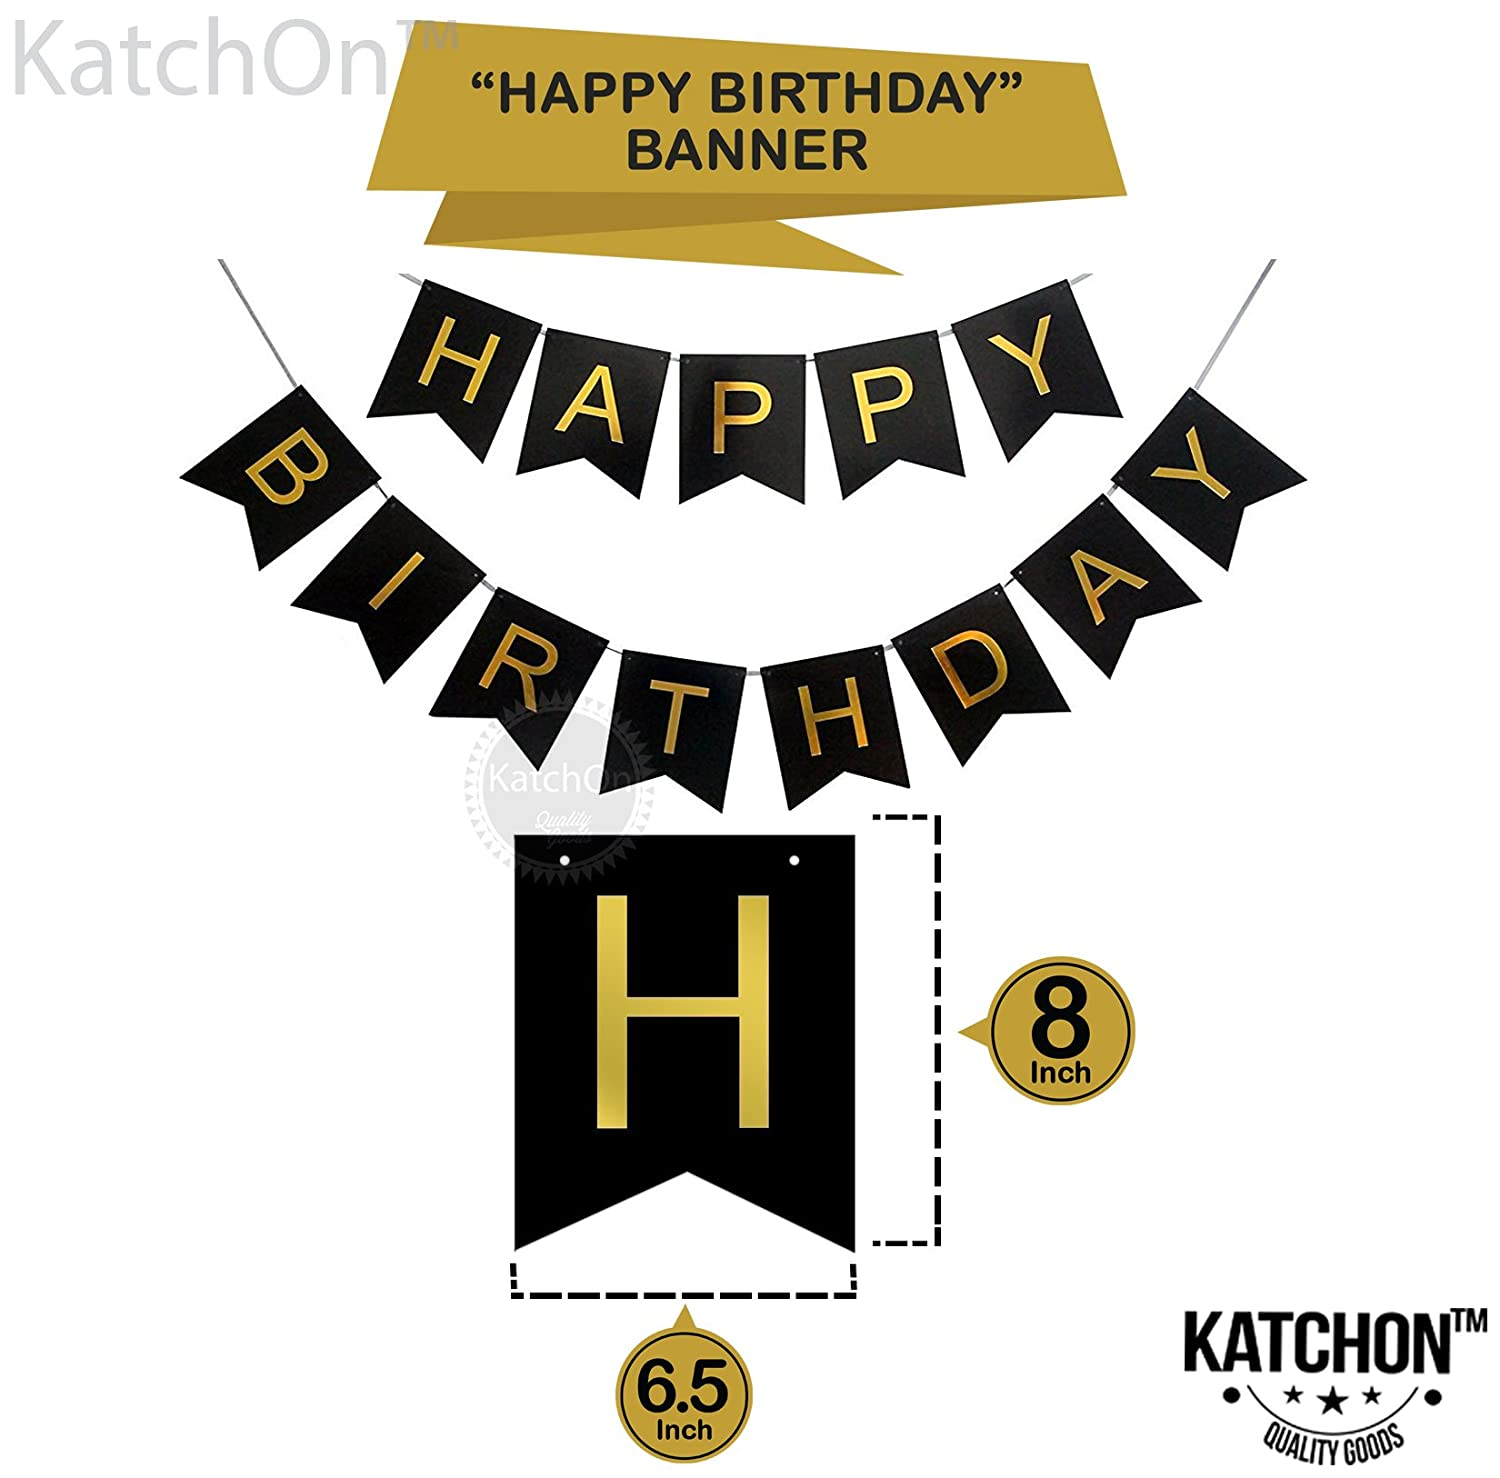 photo about Happy Birthday Printable Banner titled KatchOn 60th Birthday Bash Decorations Package - Joyful Birthday Black Banner, 60th Gold Selection Balloons,Gold and Black, Range 60, Ideal 60 Yrs Previous